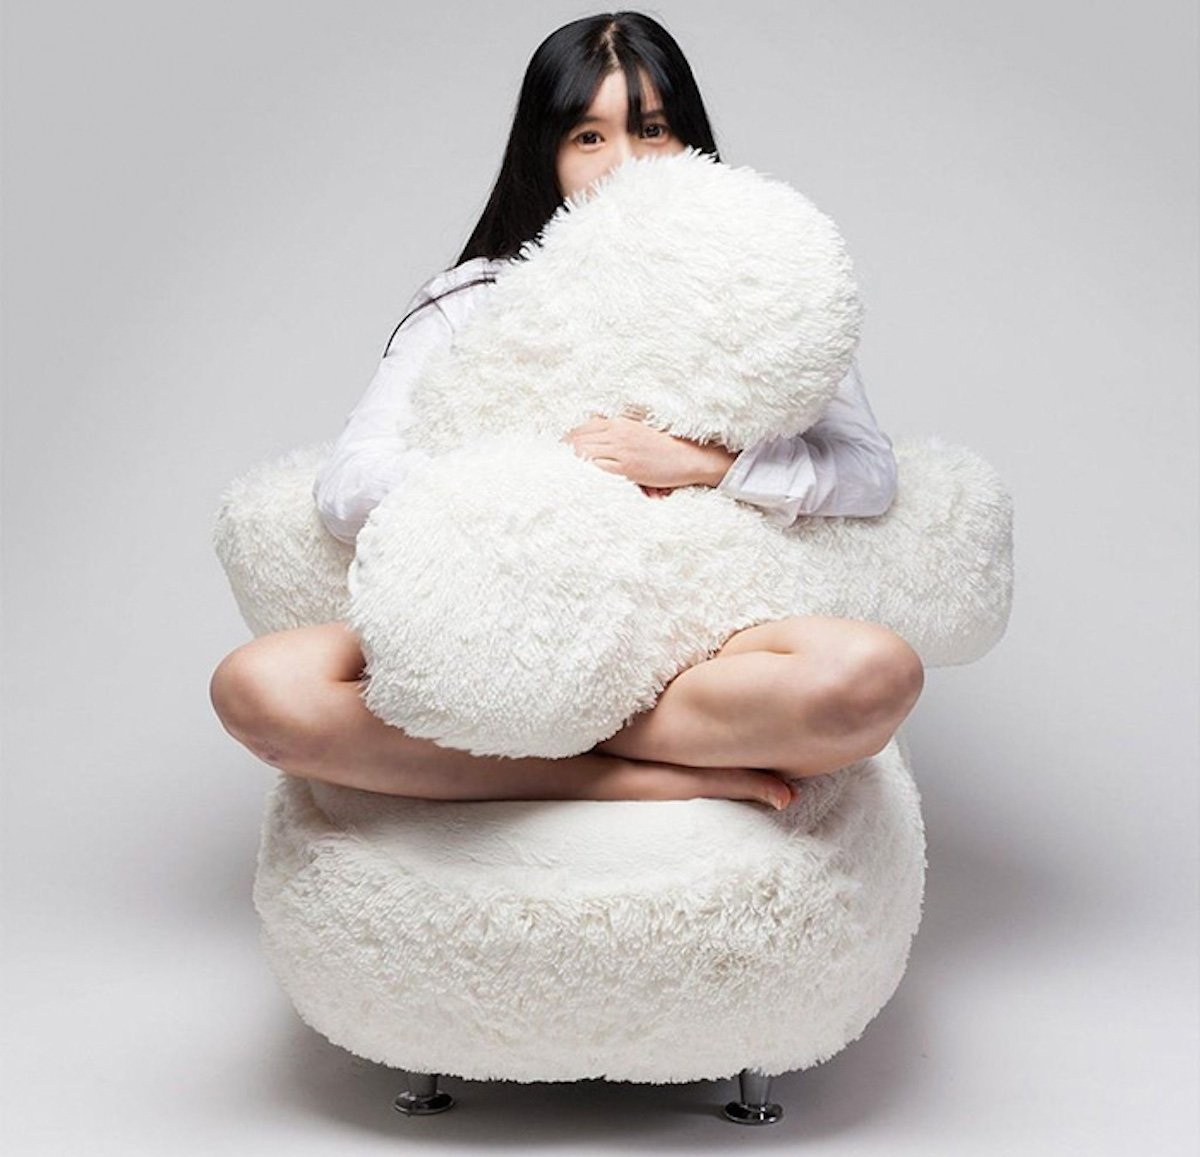 free-hug-sofa-eun-kyoung-lee-white